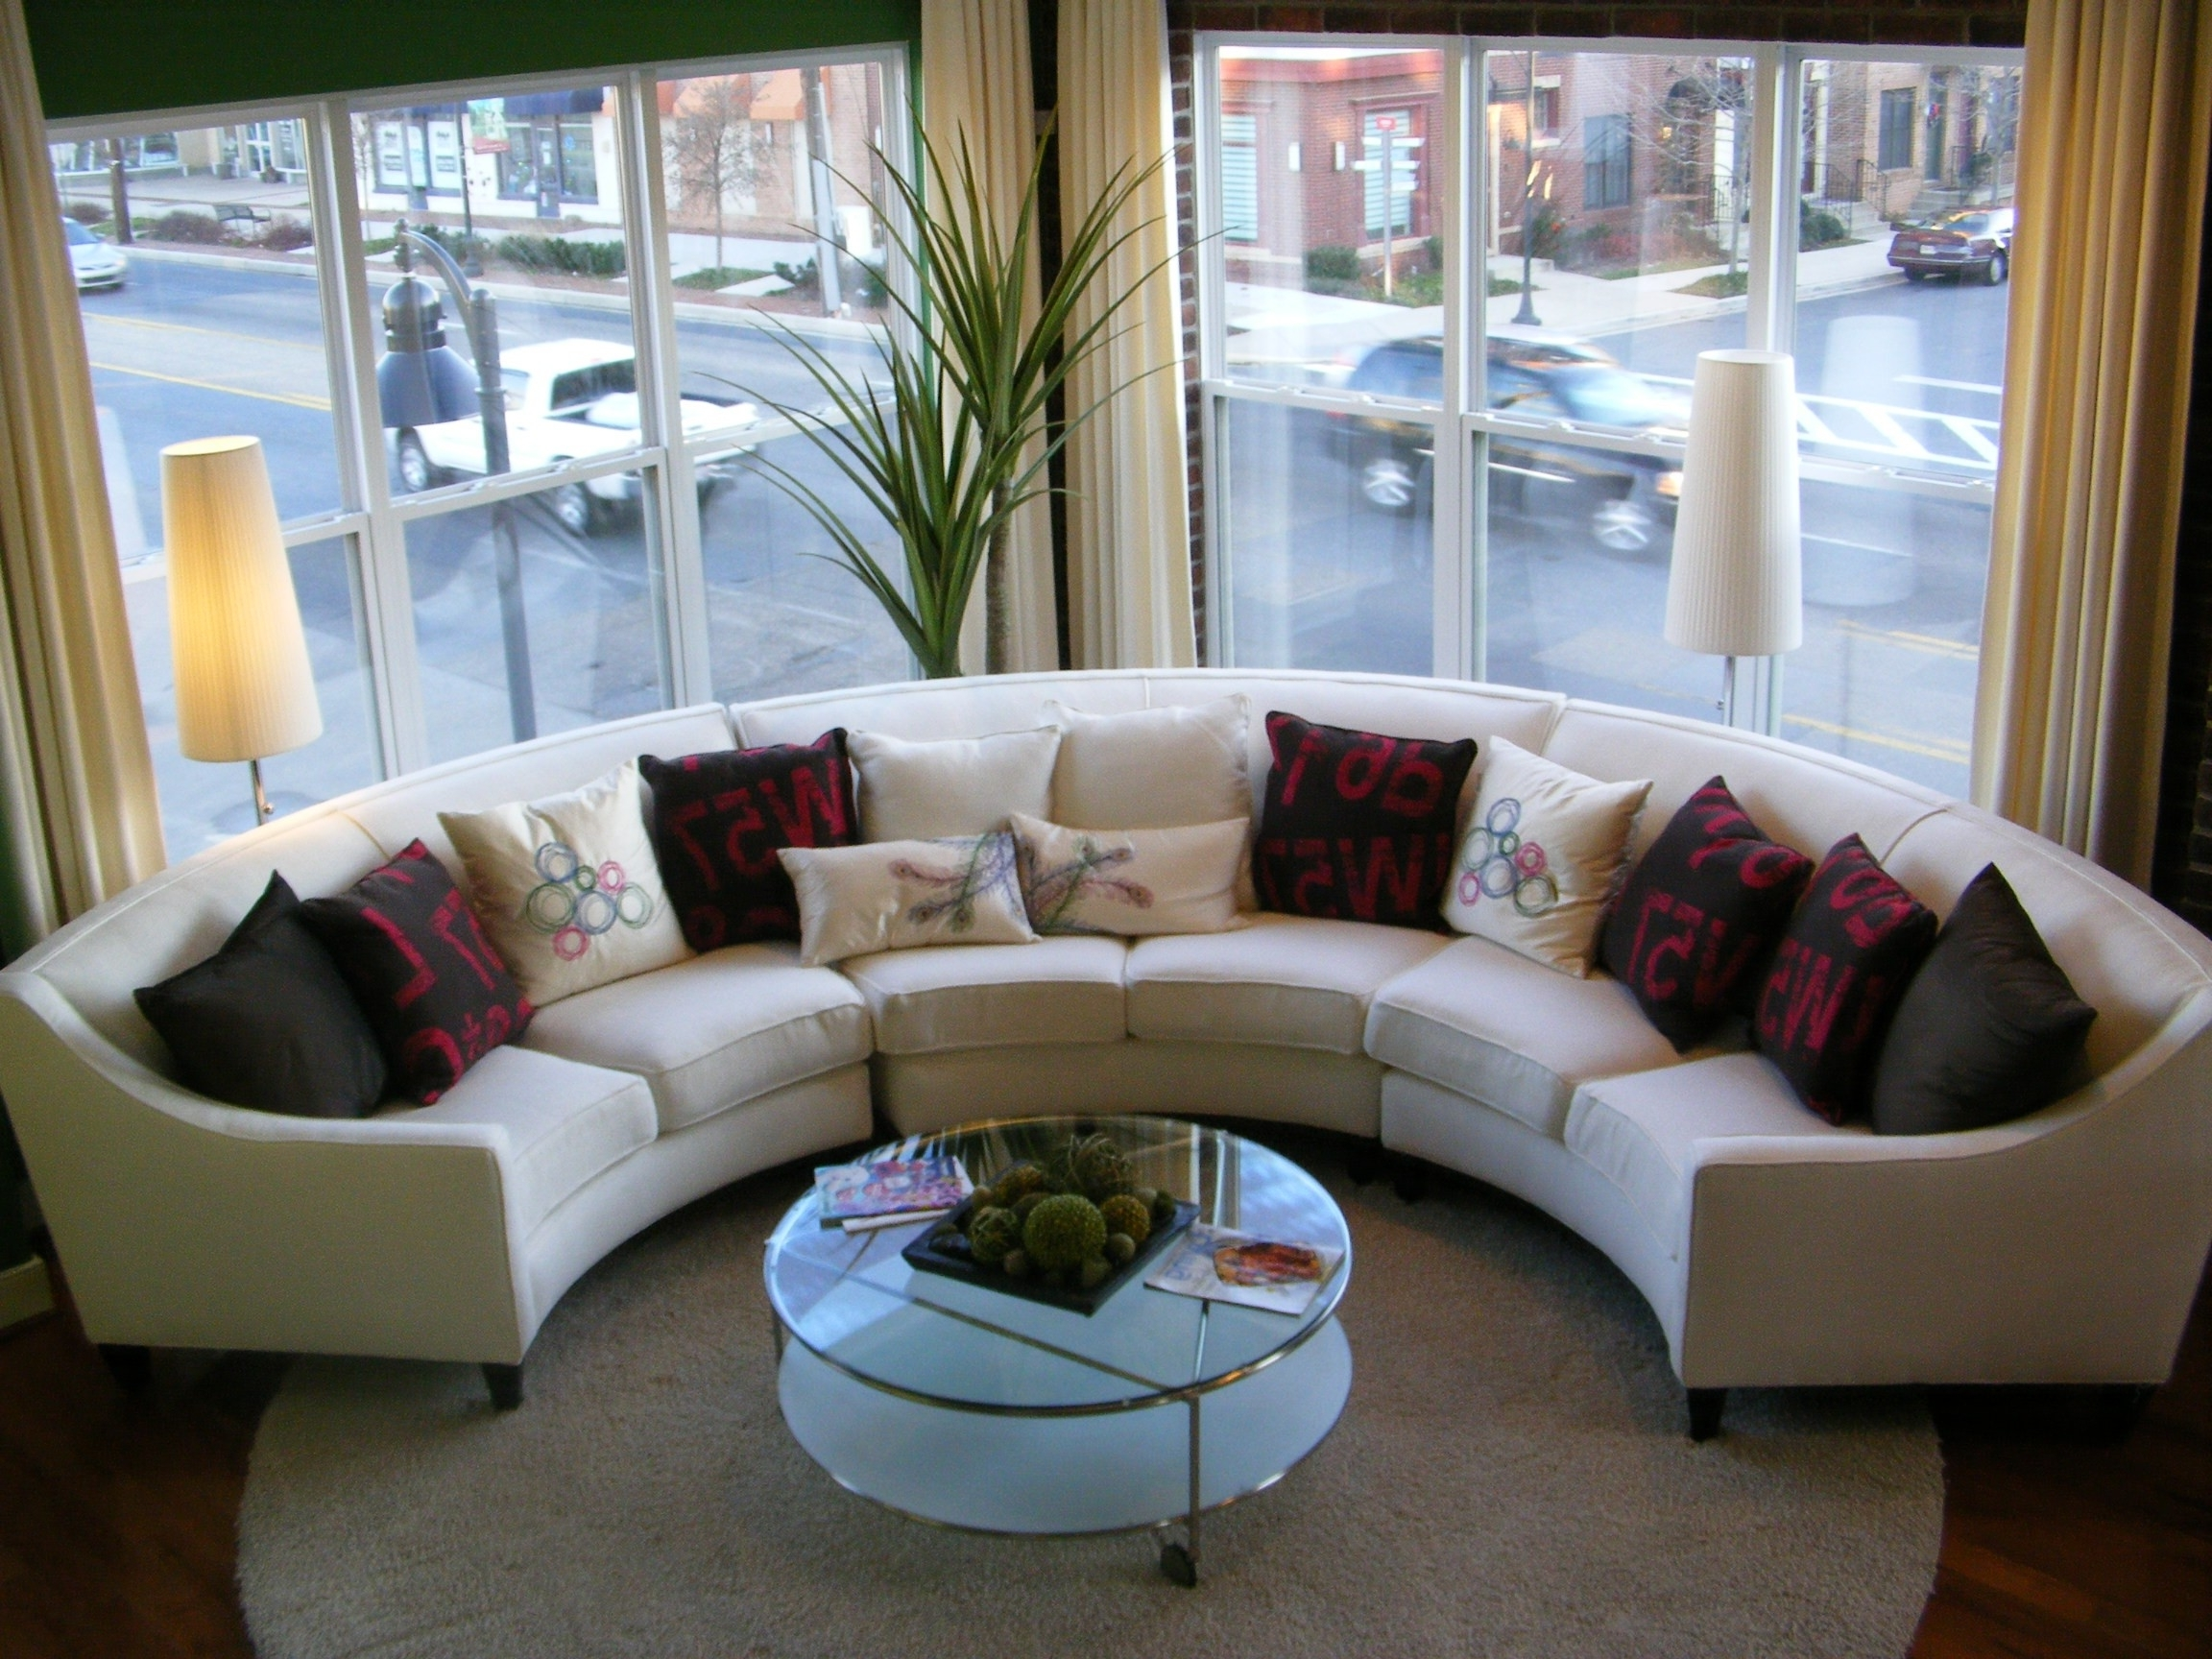 Fashionable Sectional Sofas For Small Living Rooms Inside Small Living Room Decorating Ideas For Apartments With White (View 18 of 20)